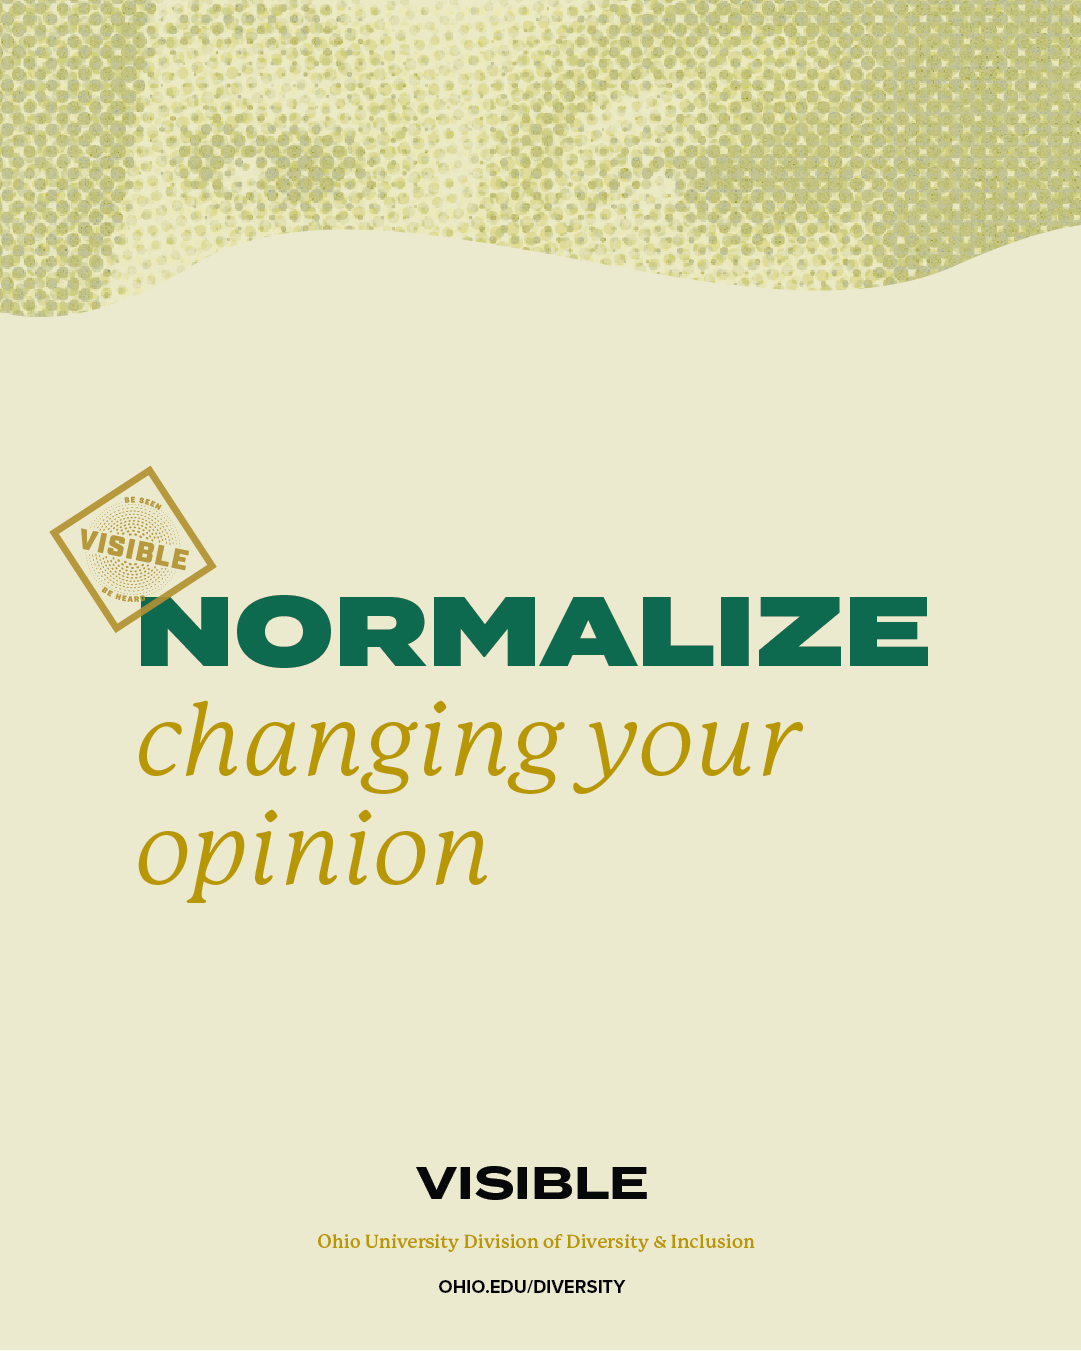 Normalize changing your opinion